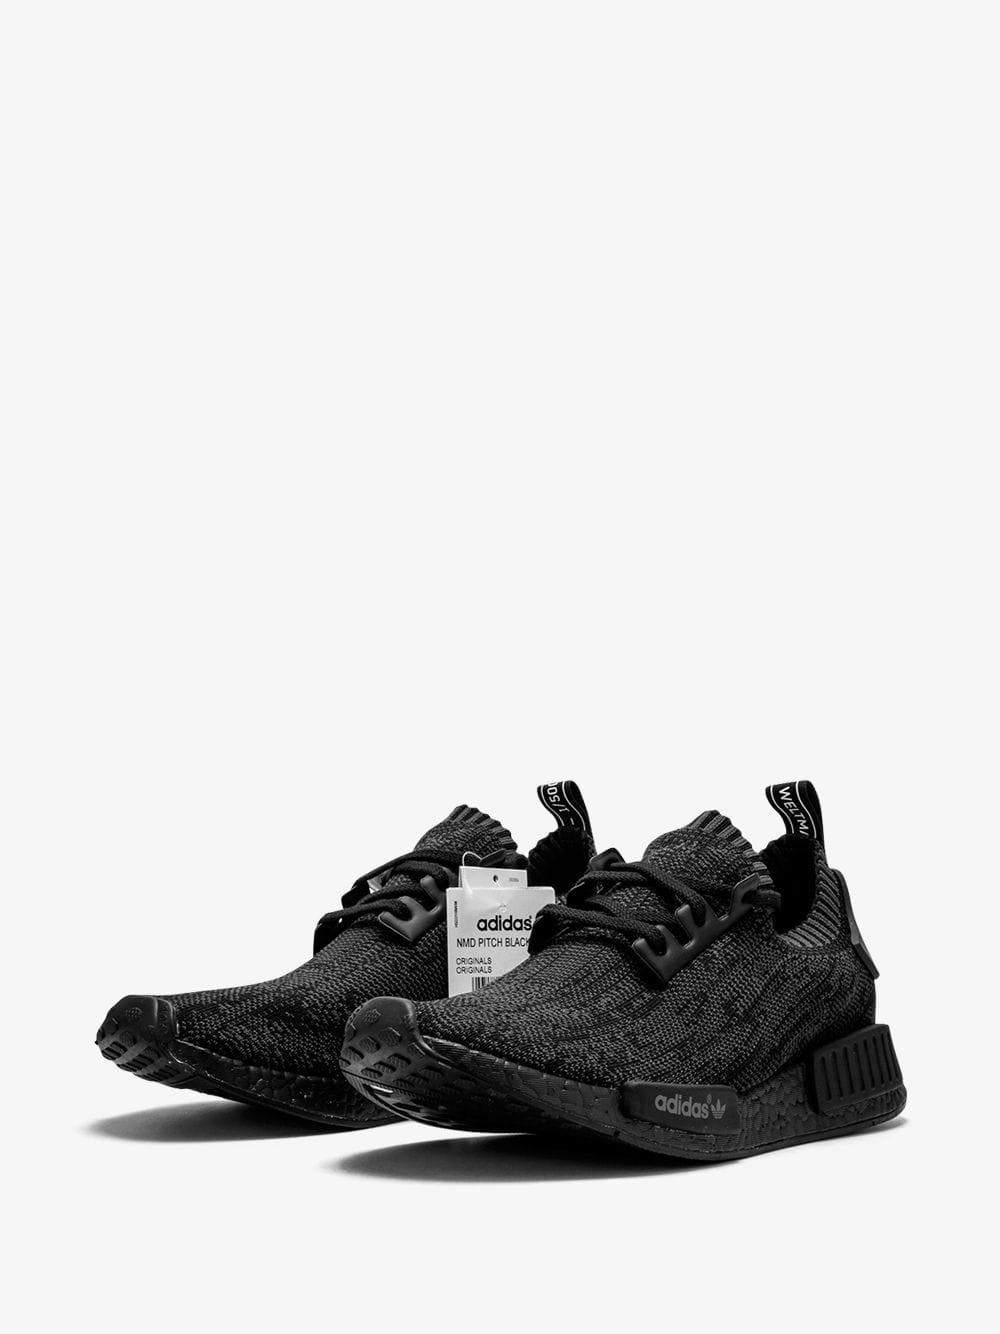 d543d4d9505db Adidas Nmd Pitch Black - Size 11 for men